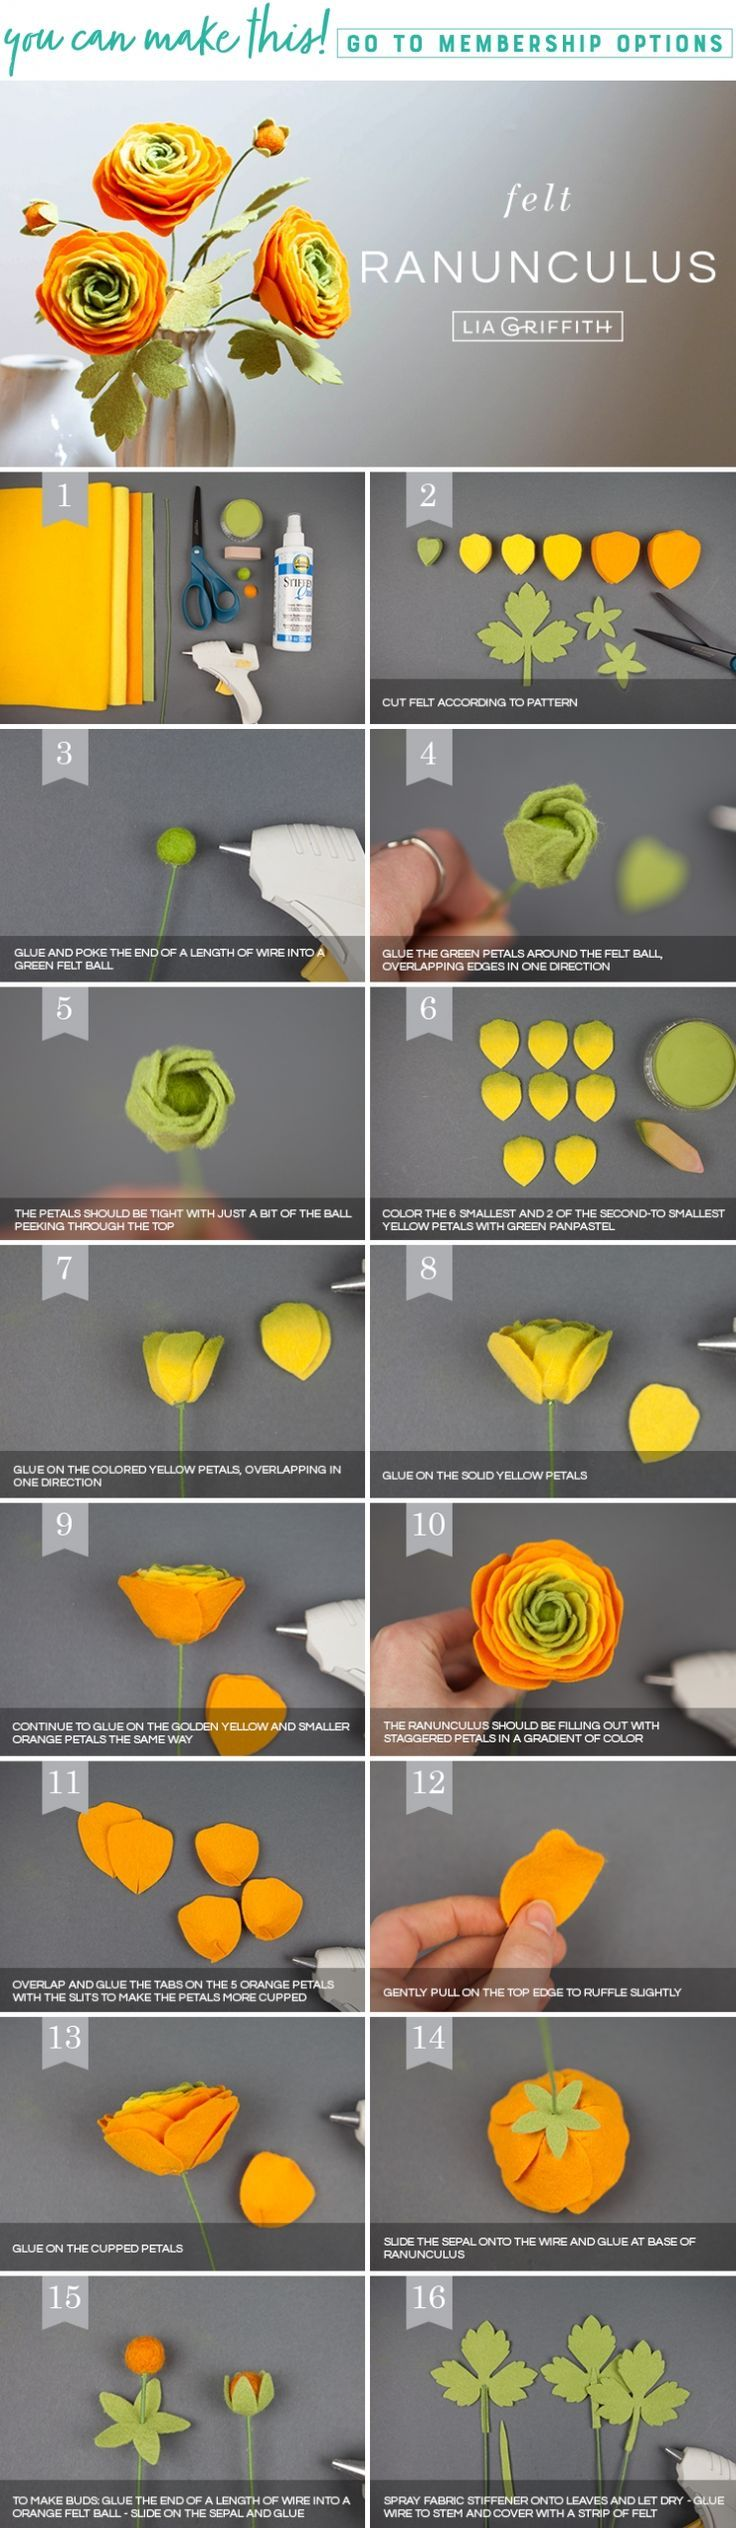 Photo of Felt ranunculus flowers with nice color transition – Lia Griffith